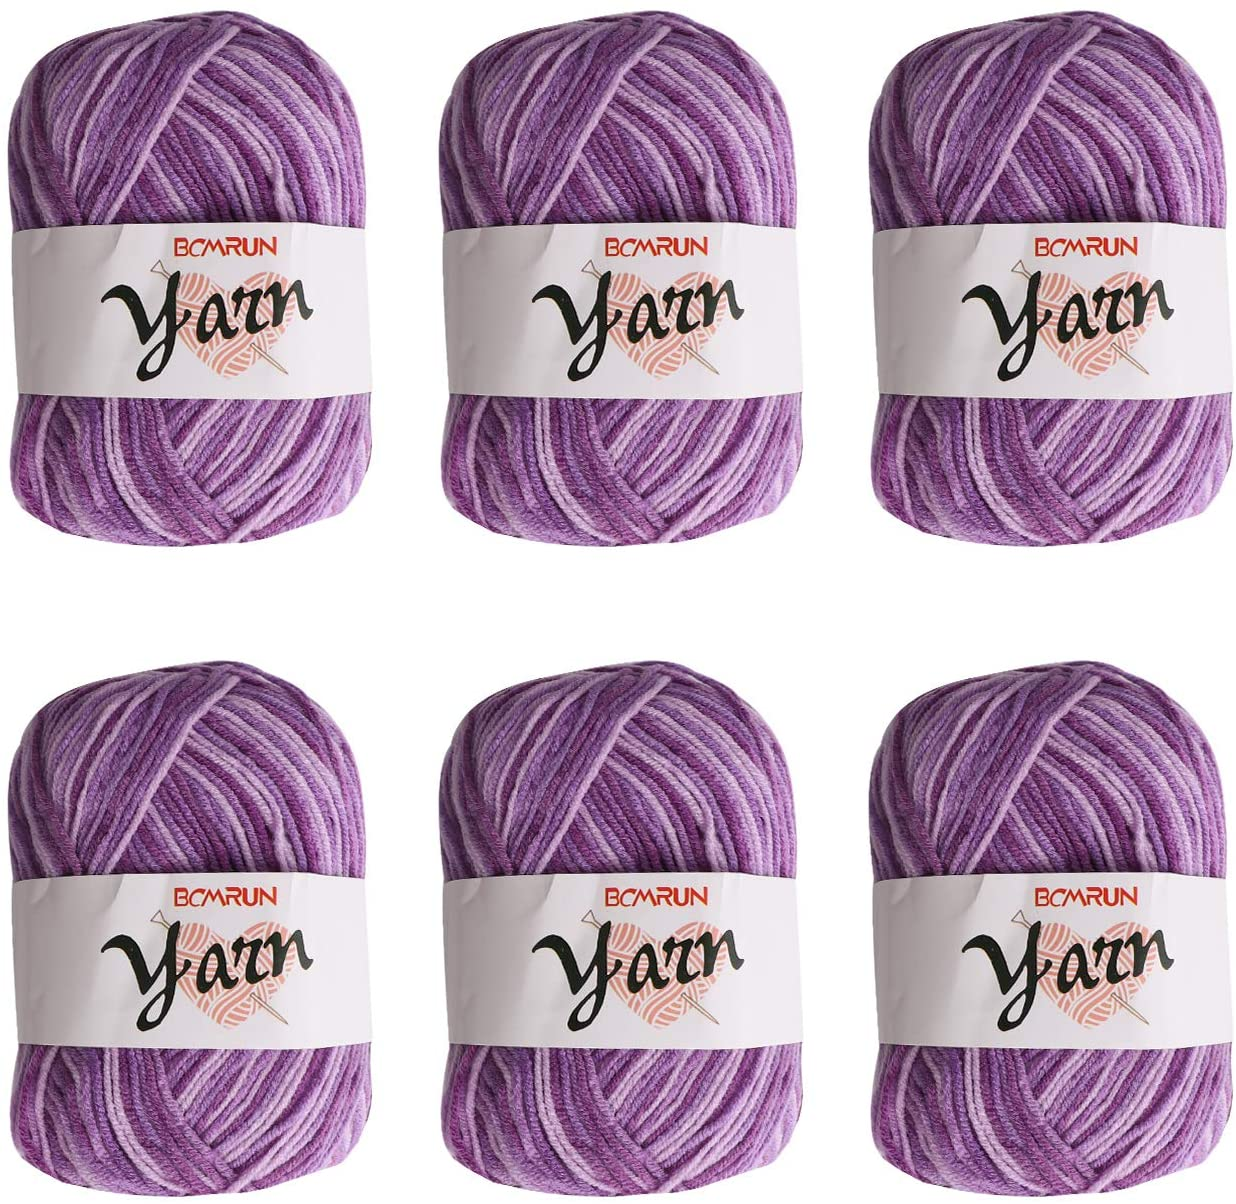 Knitting Yarn Bonbons 6 x 50g Double Knitting Yarn Set Skeins Large Yarn Bonbons Assorted Colors 100% Acrylic for Crochet Knitting Pack Variety Colored Assortment Colourful Chunky Acrylic Yarn Set